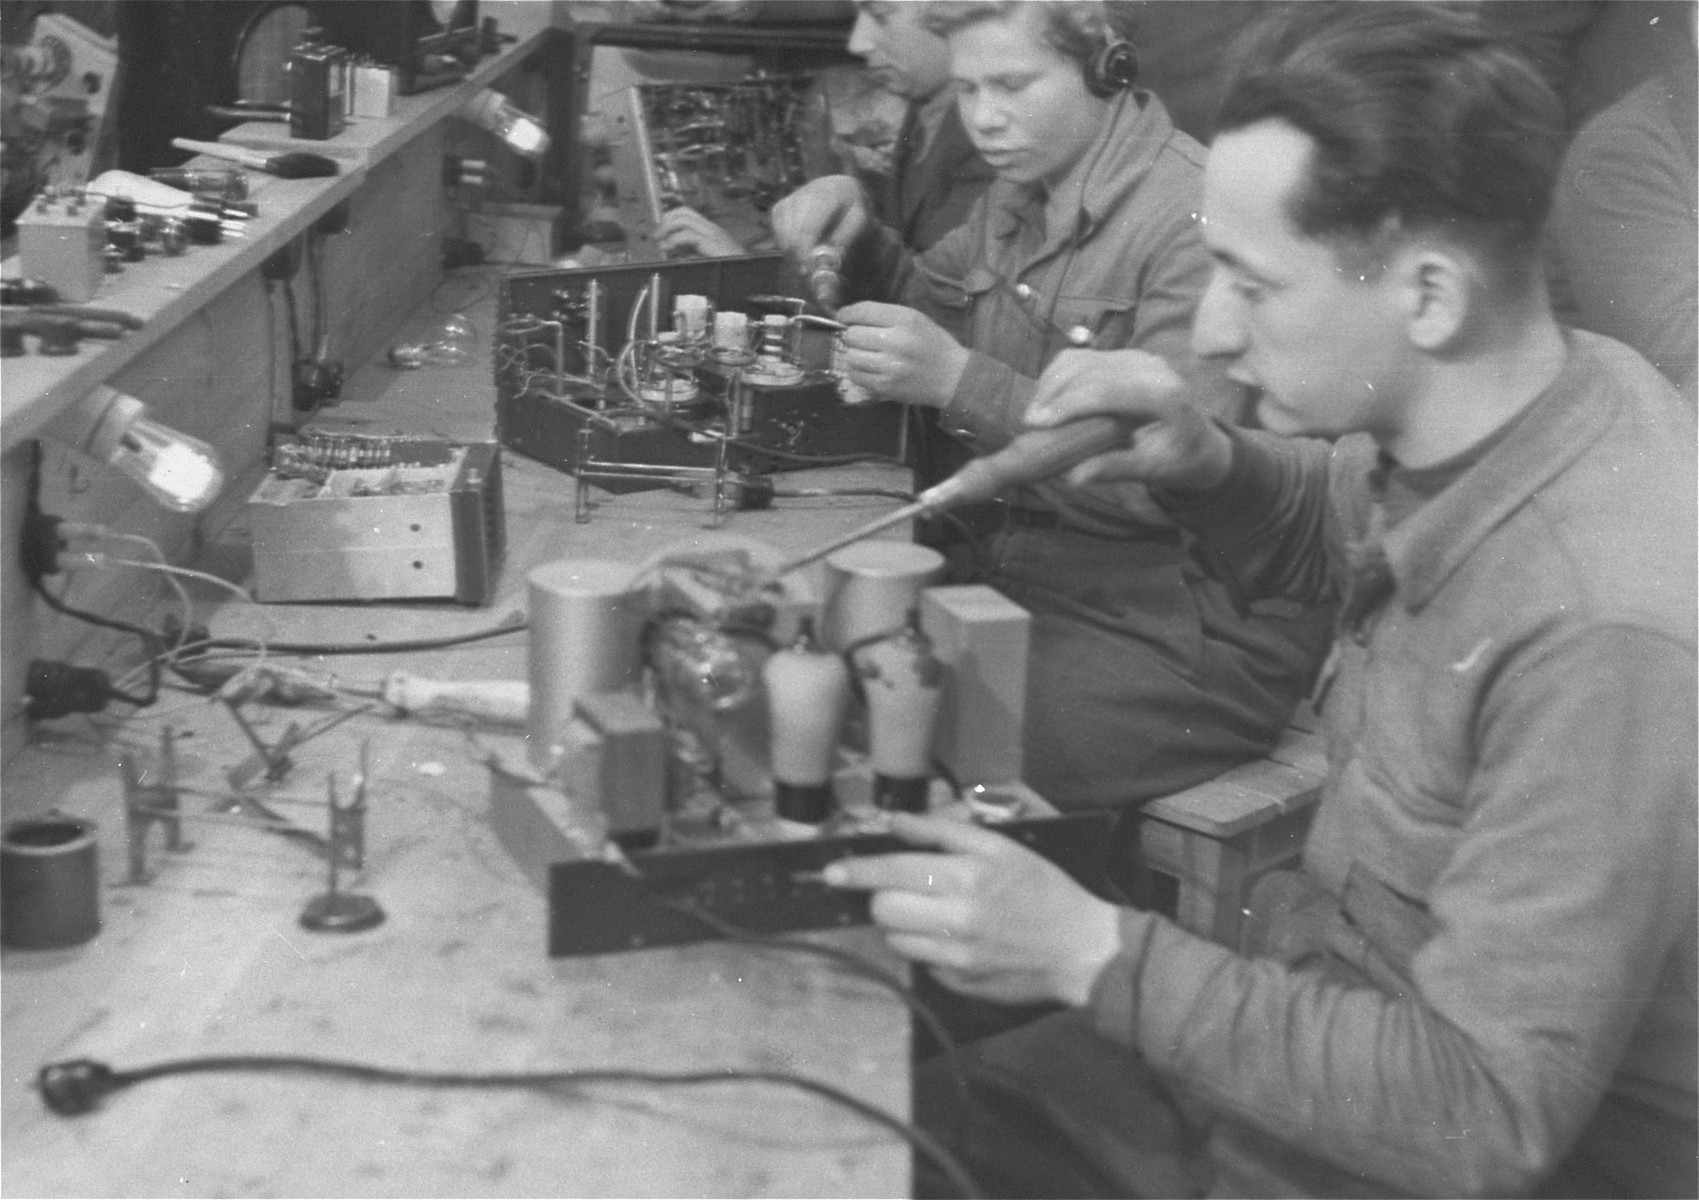 A group of men builds radios in an ORT (Organization for Rehabilitation through Training) training workshop in the Landsberg displaced persons' camp.